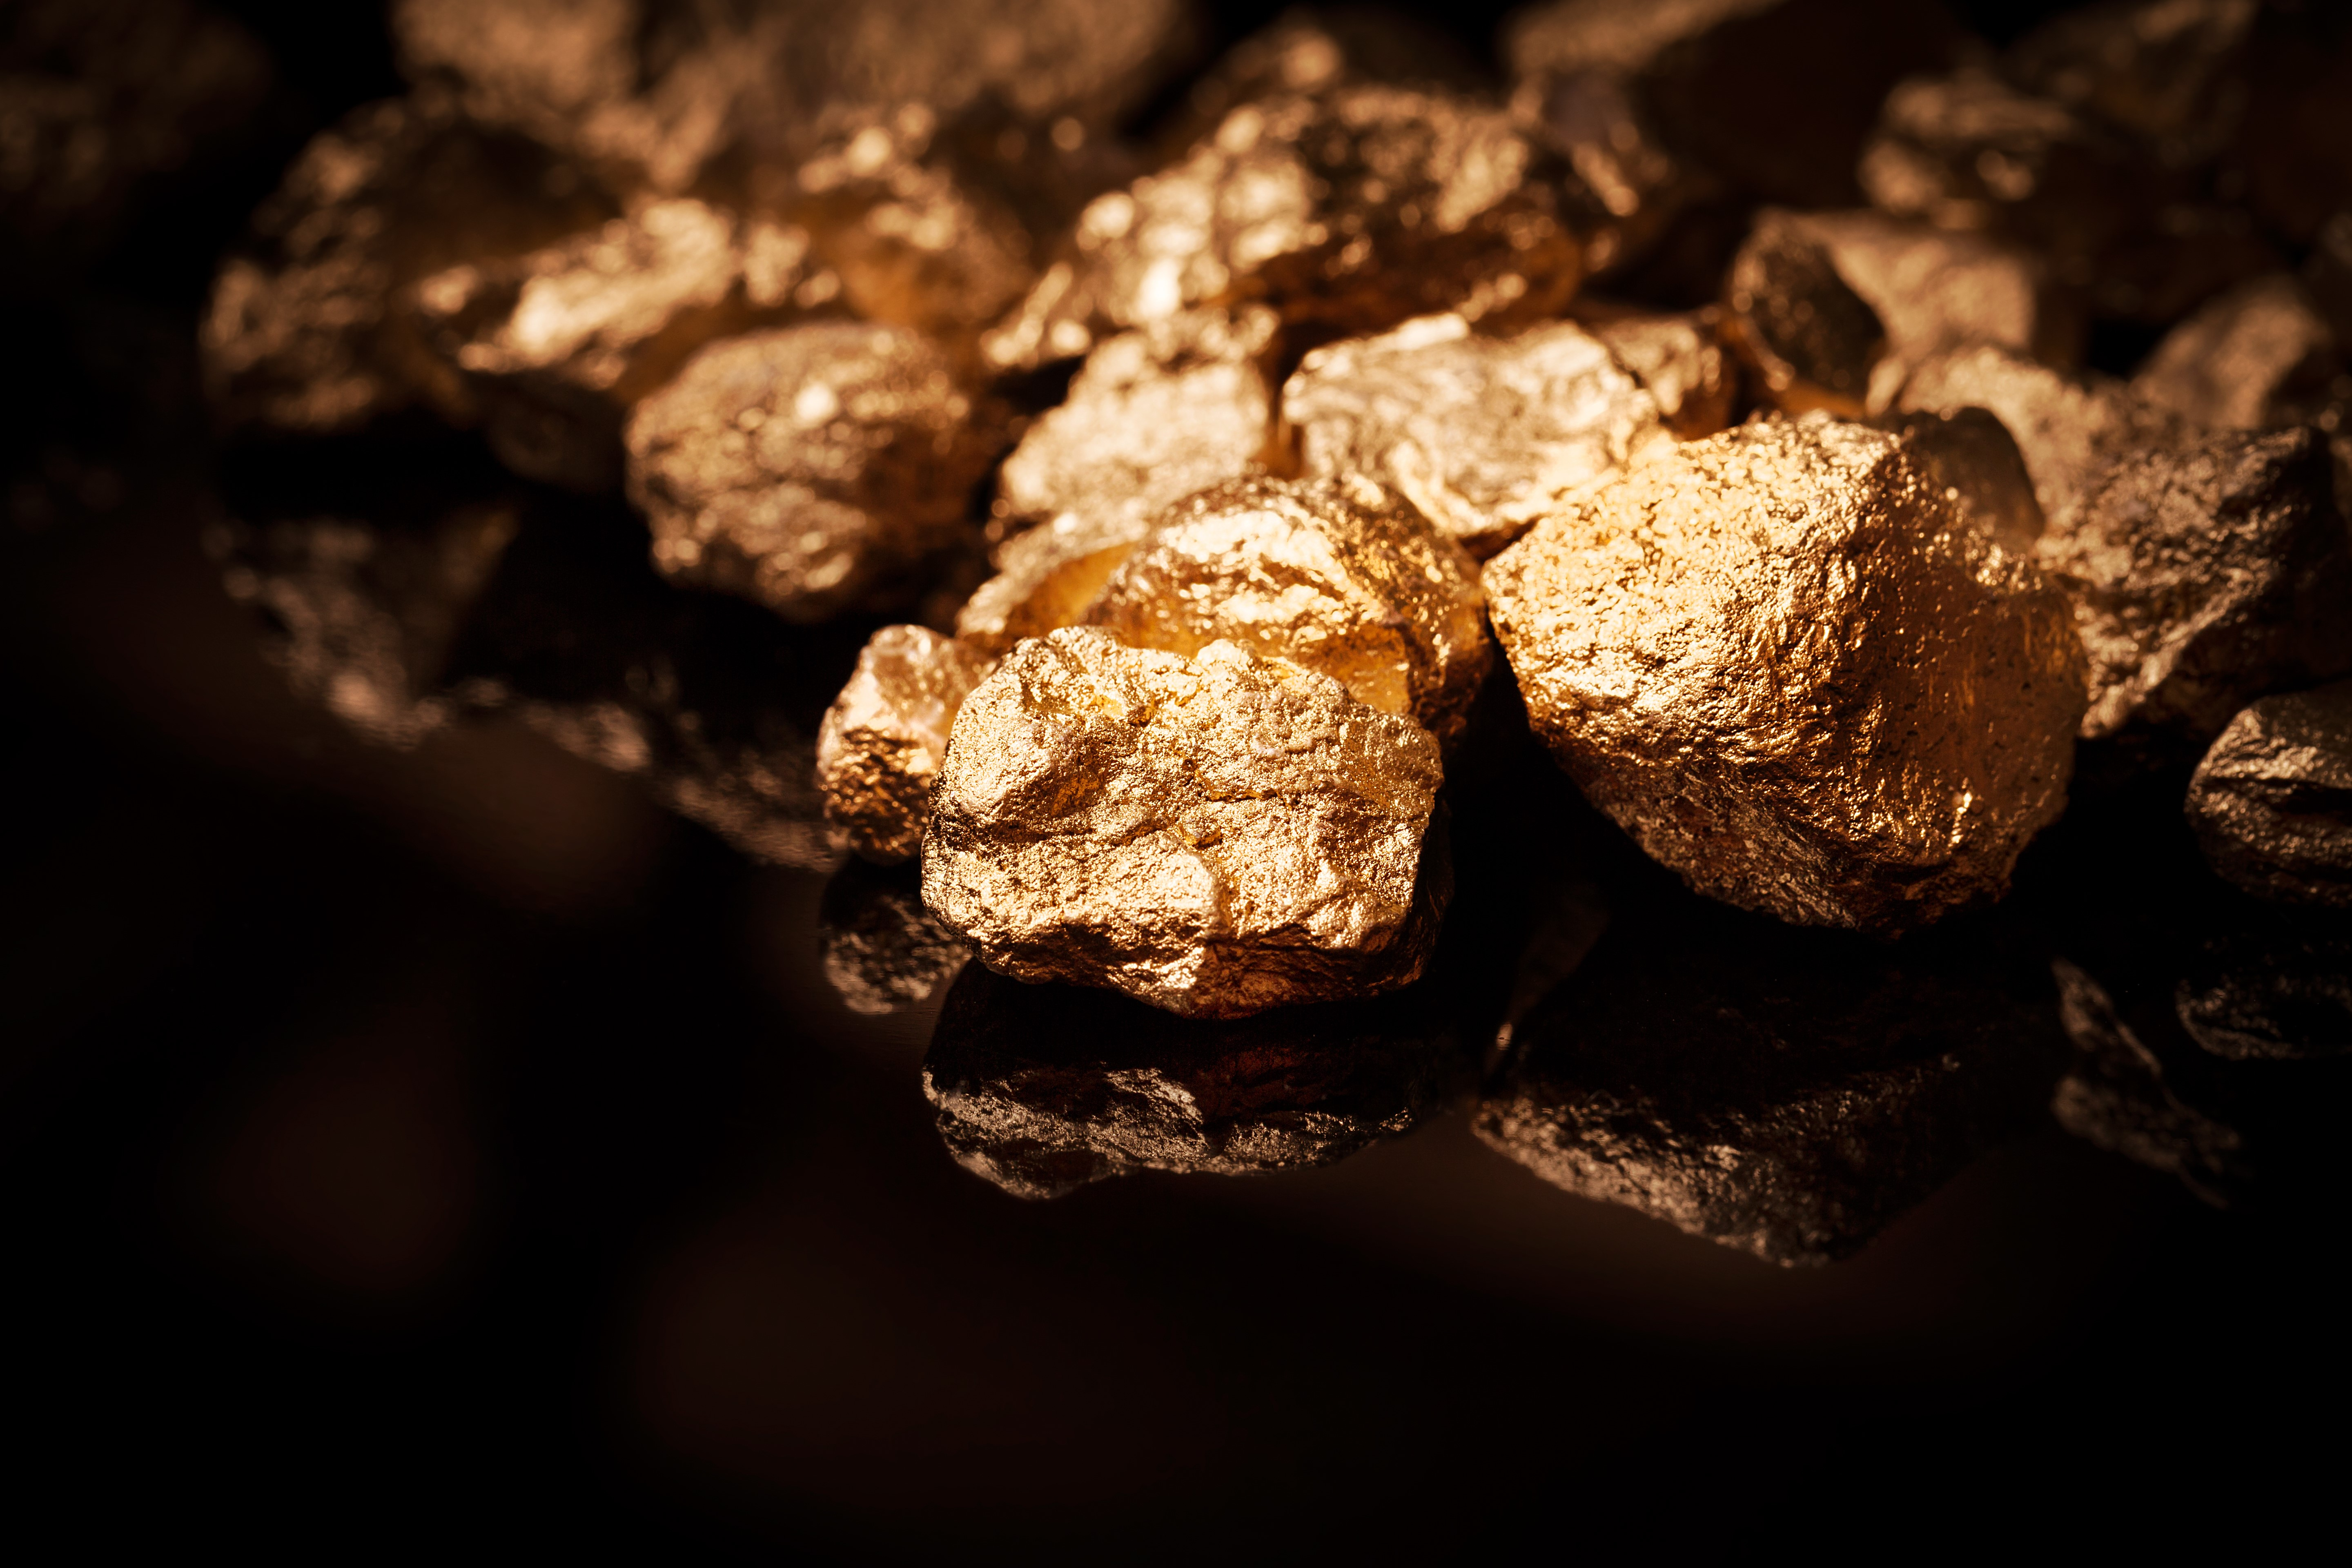 Gold Nuggets Extracted from Gold Ore